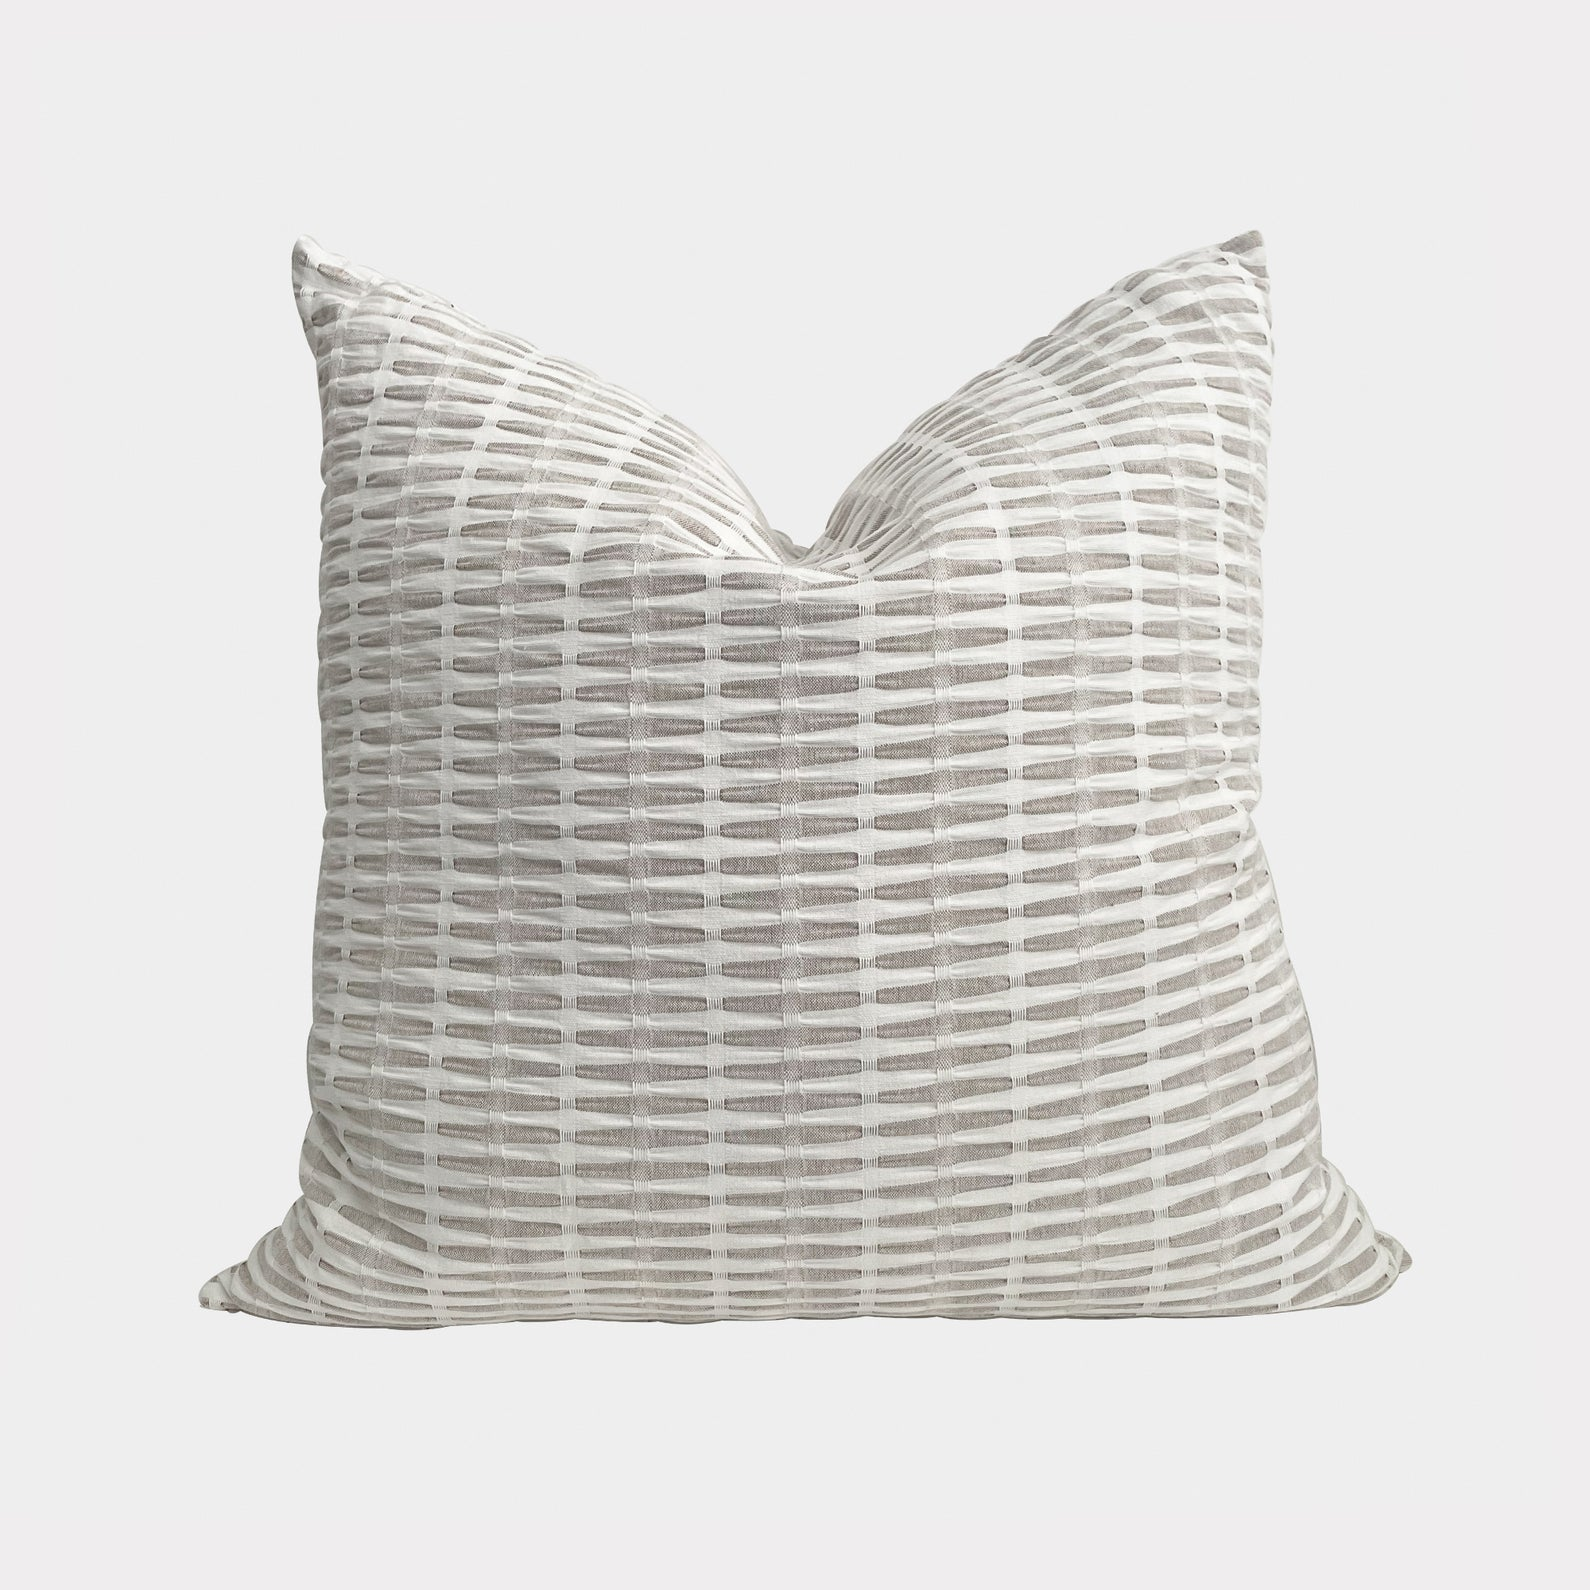 HALLE IN SEPIA CUSHION WITH INSERT